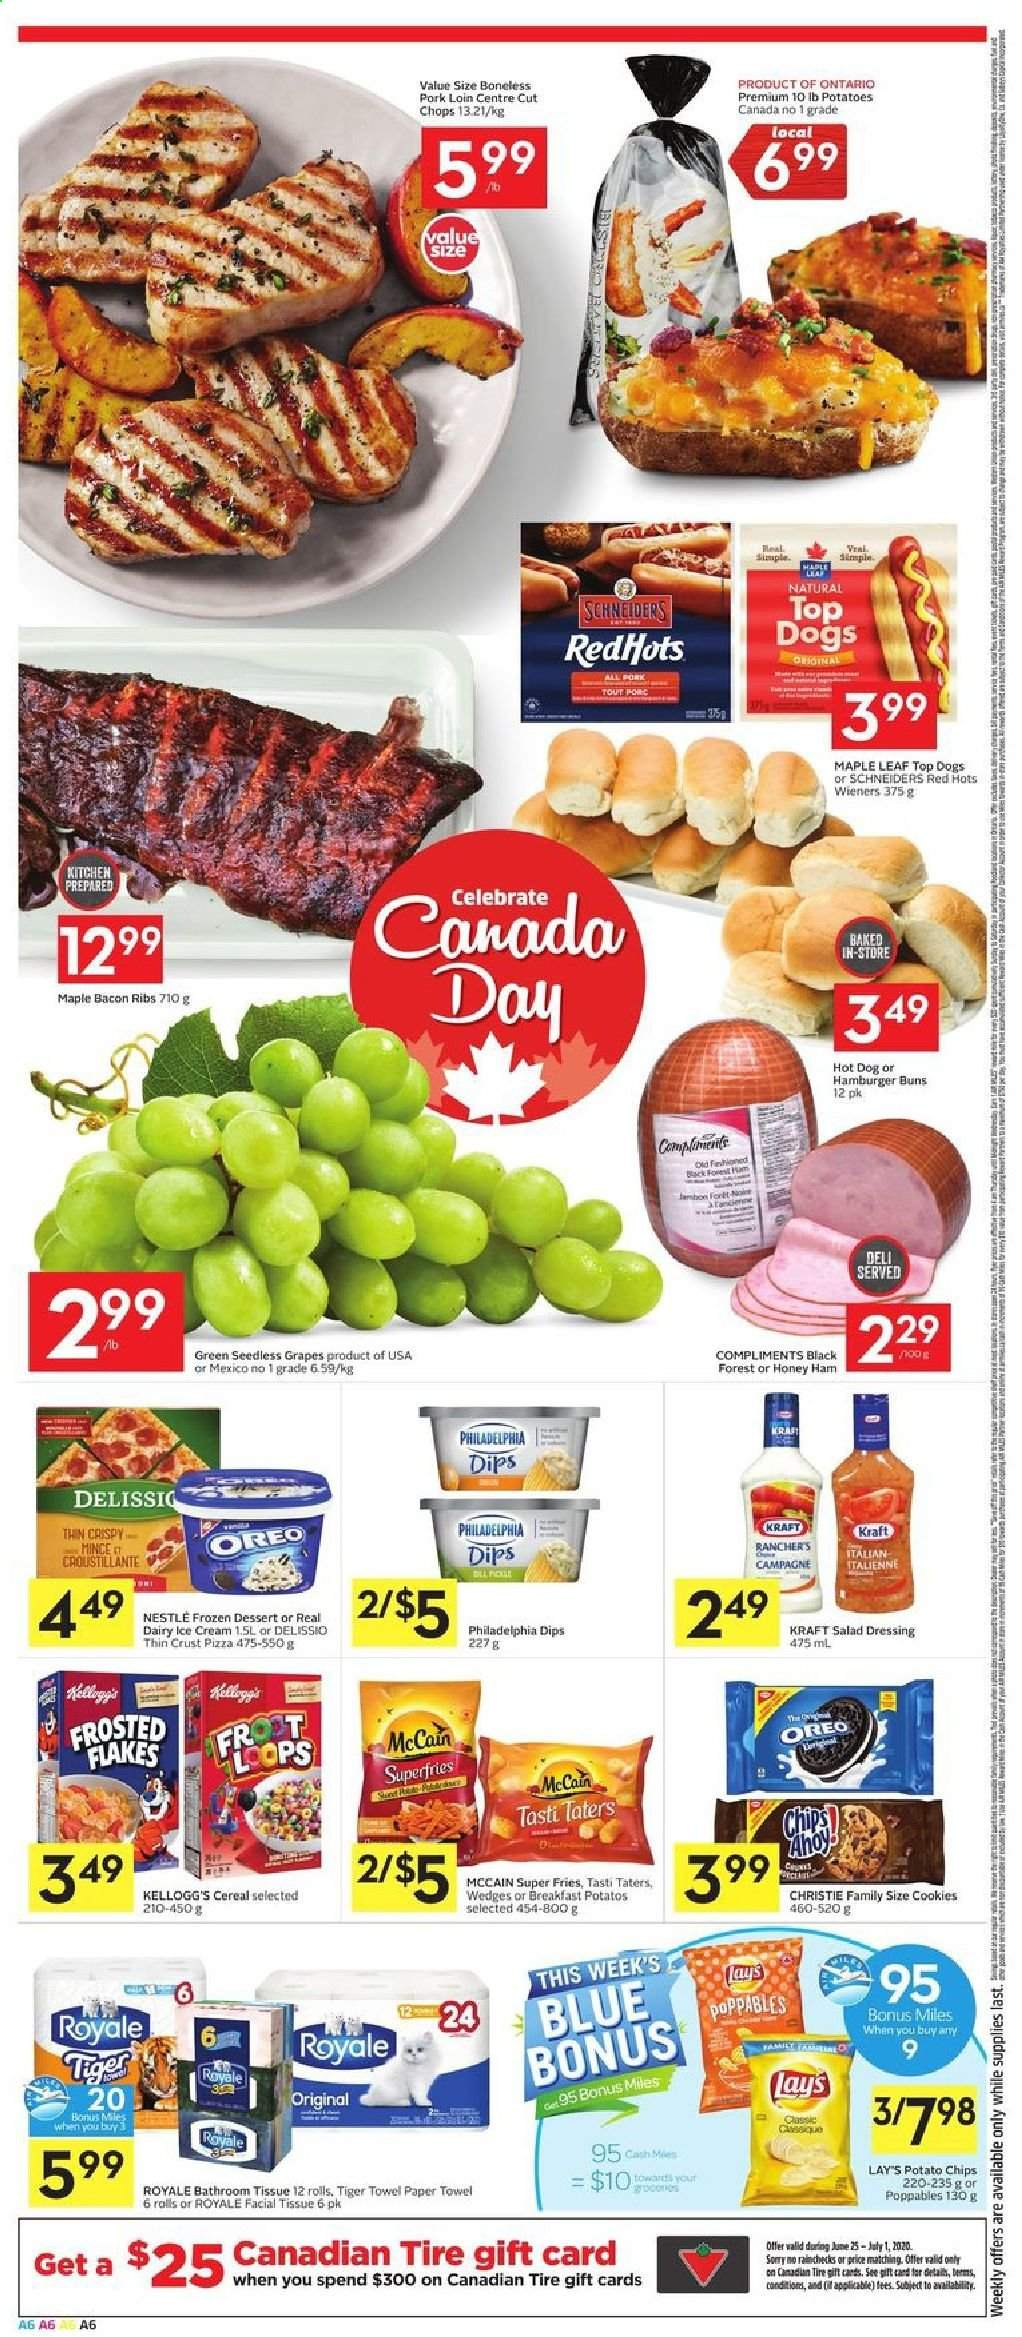 Foodland Flyer  - June 25, 2020 - July 01, 2020. Page 6.